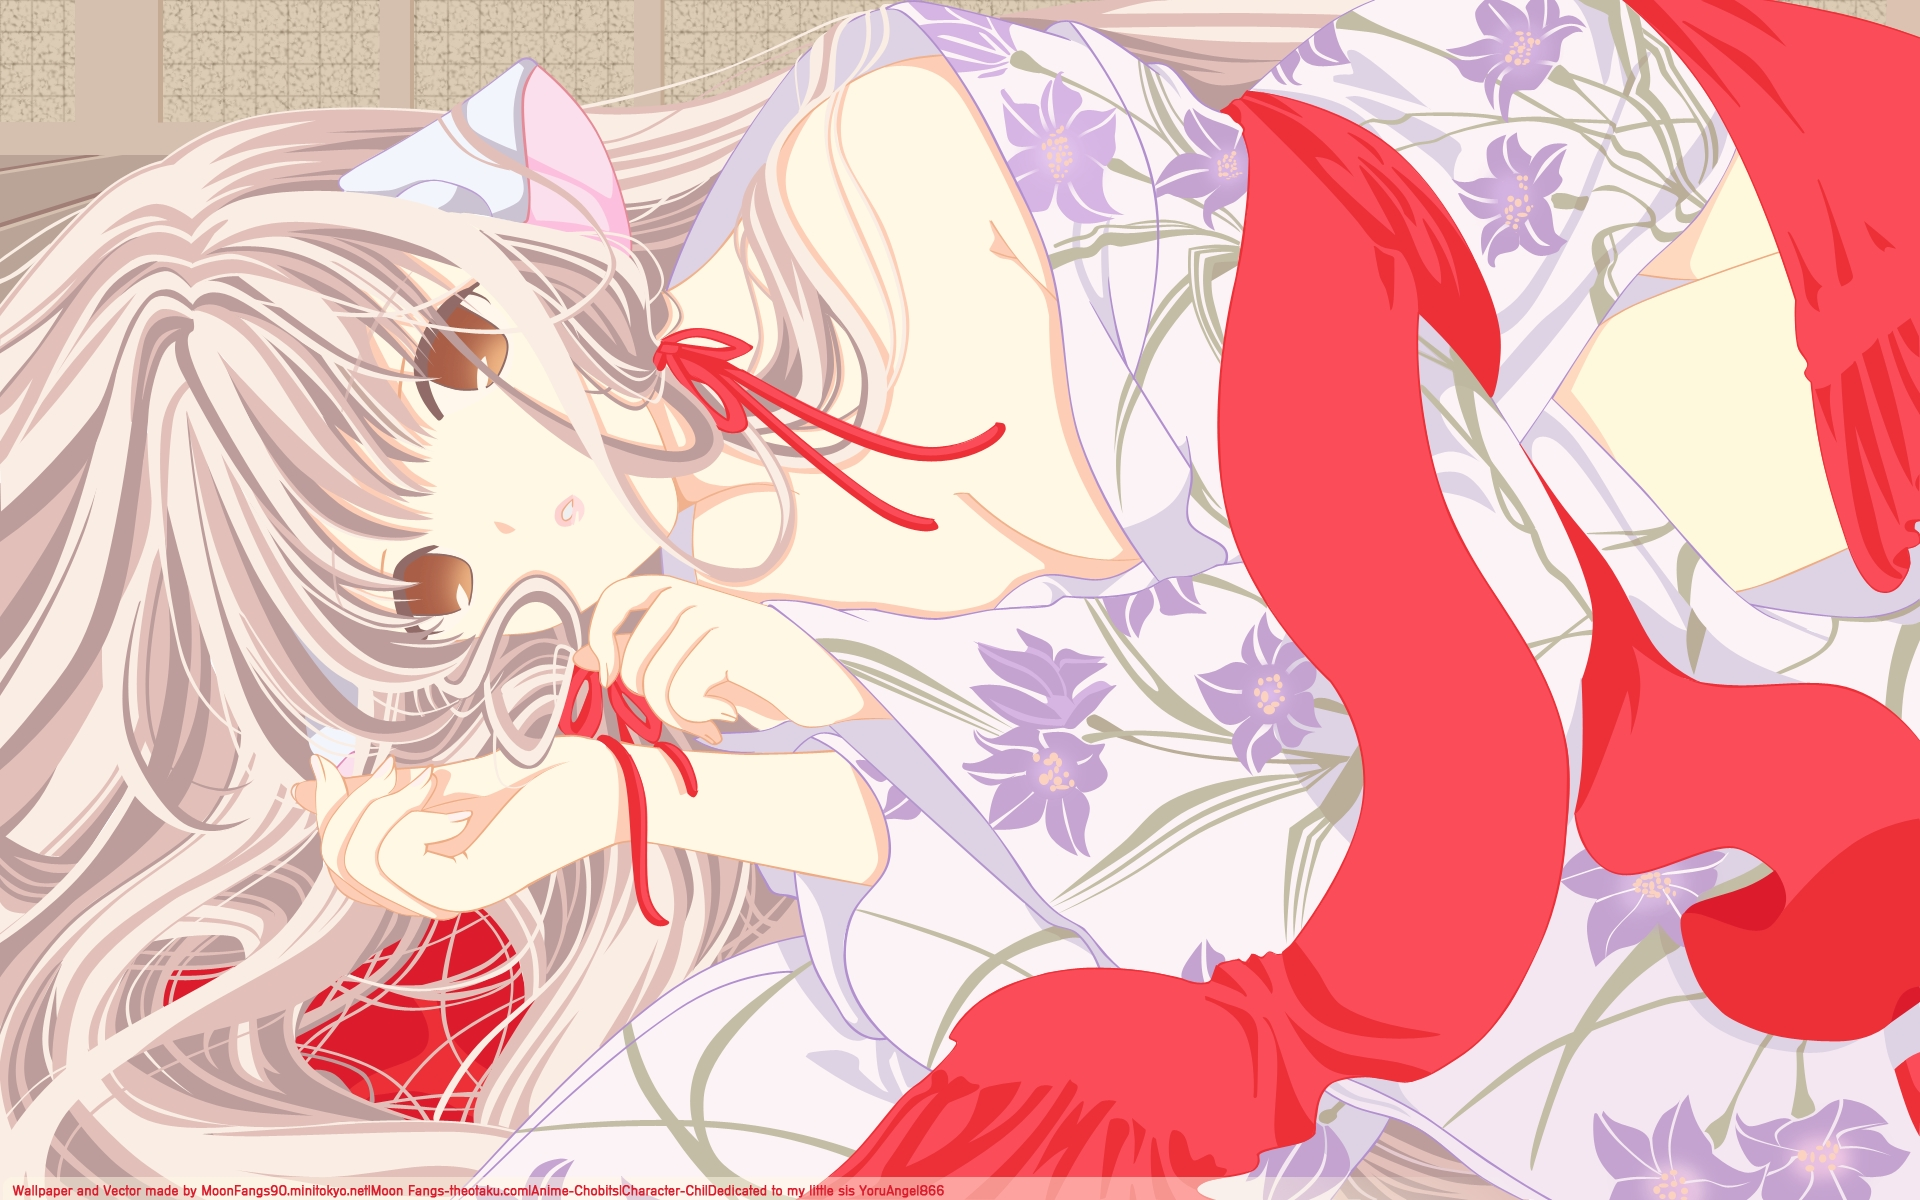 chii chobits clamp signed vector watermark